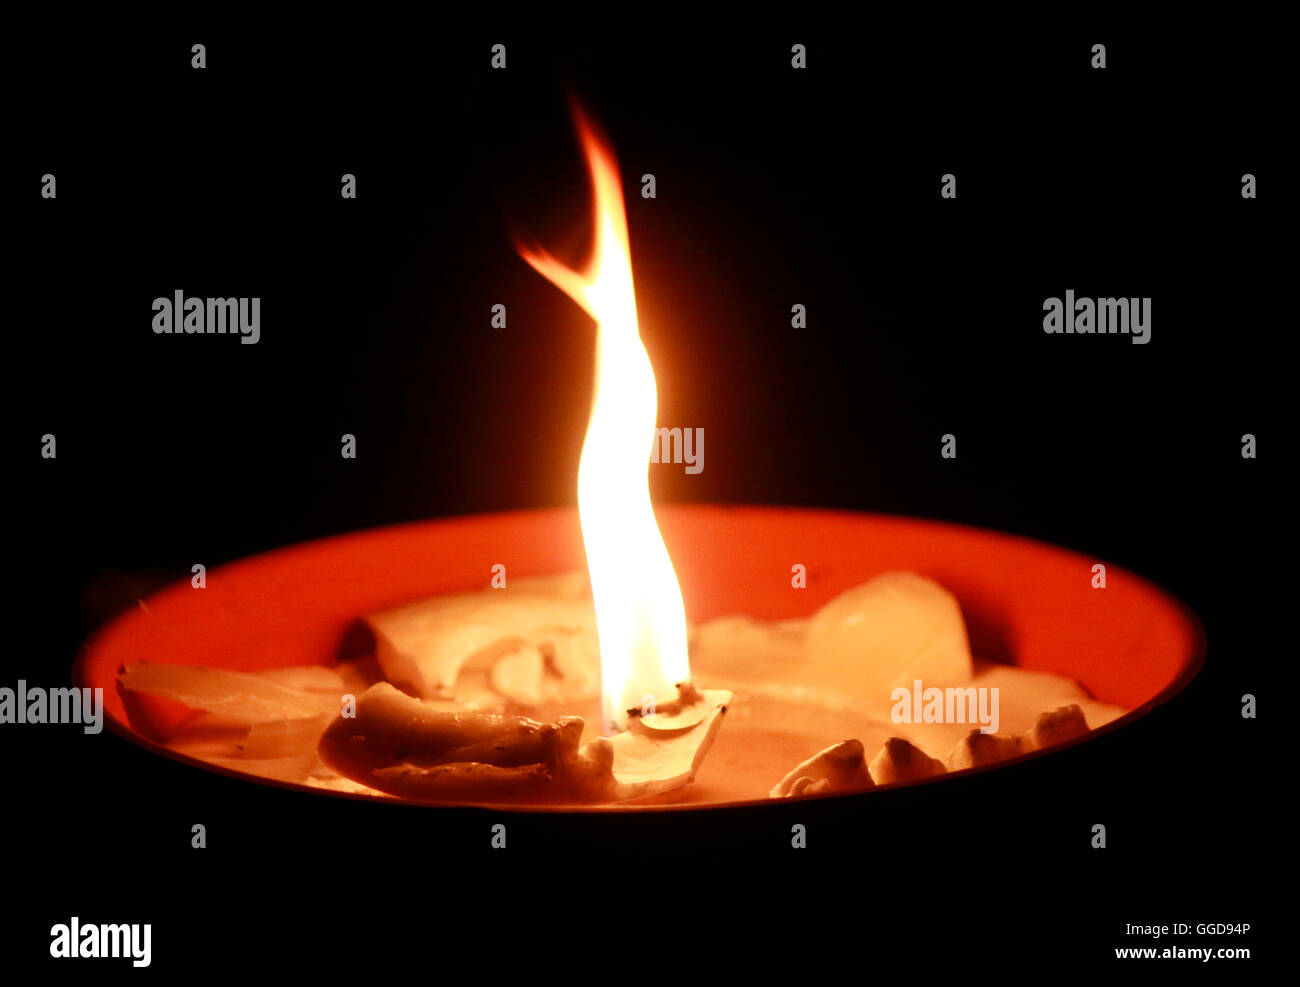 Feuer feu nuit obscurité candle light atmosphere chagrin mounring symbolique symbole gedenken feuerschale Photo Stock